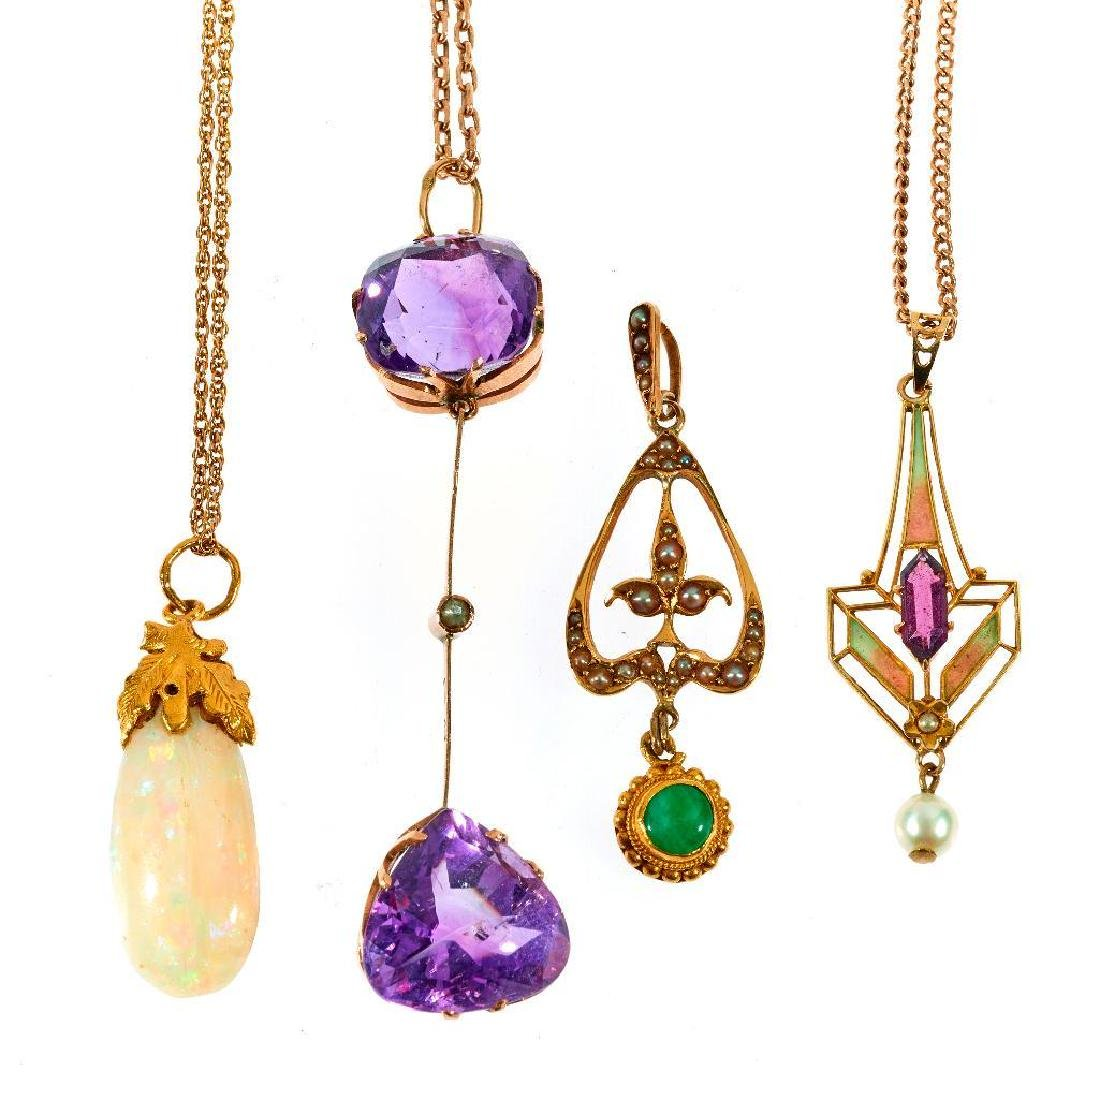 Collection of 4 Art Nouveau pendant and chains